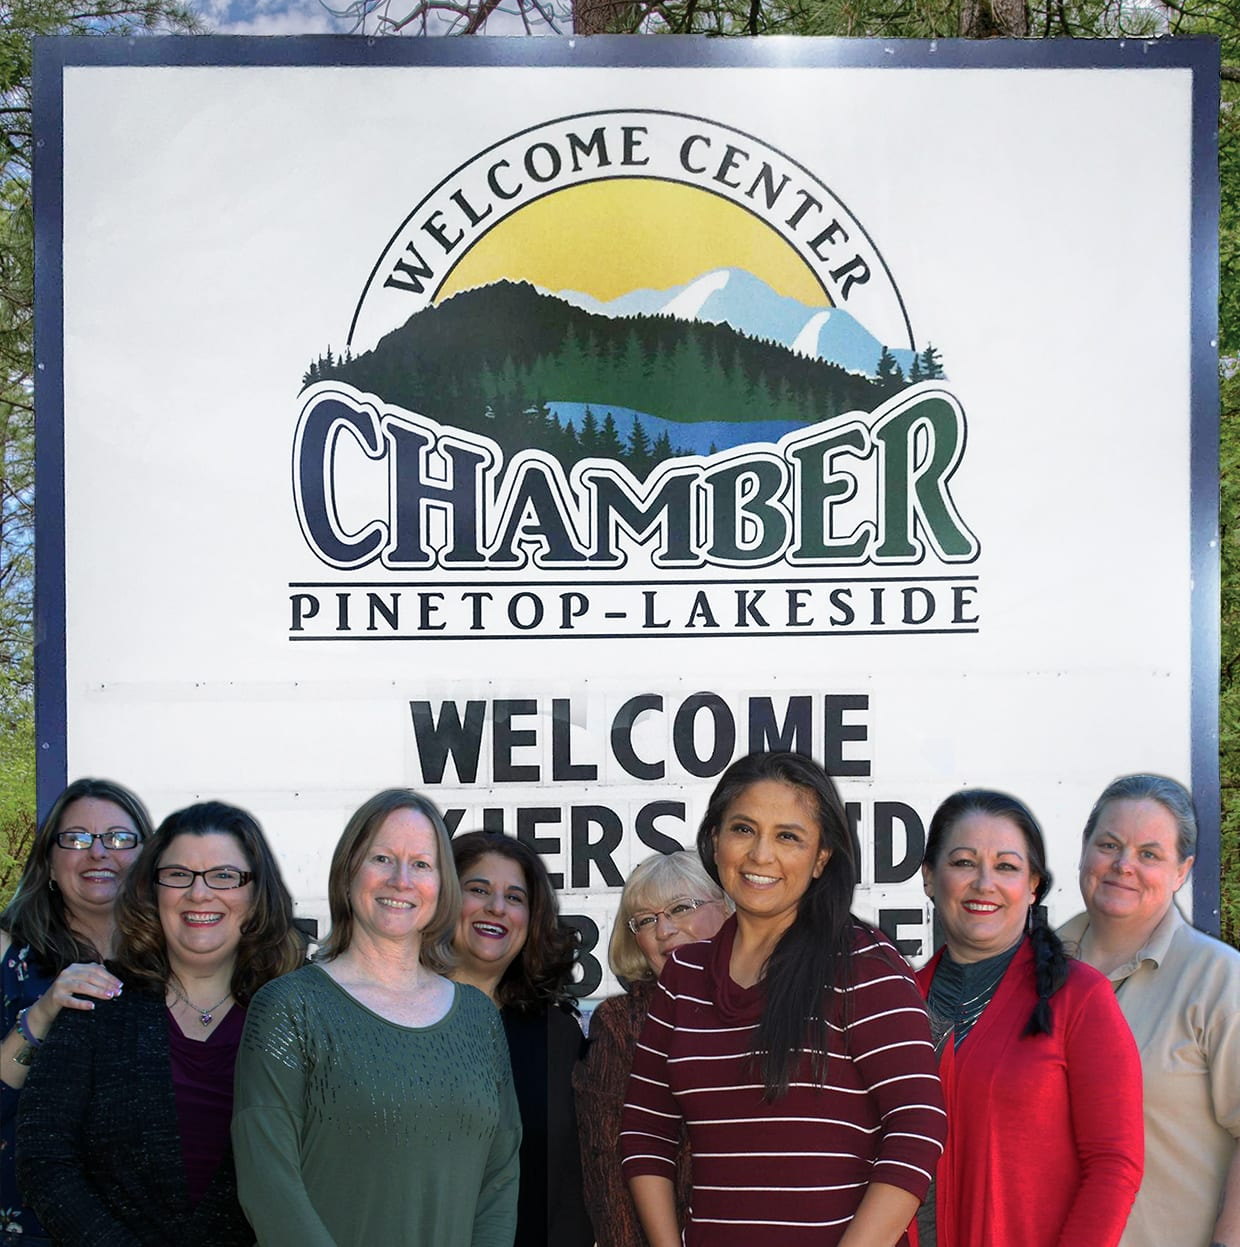 Pinetop-Lakeside Chamber of Commerce Board of Directors 2018 (image)